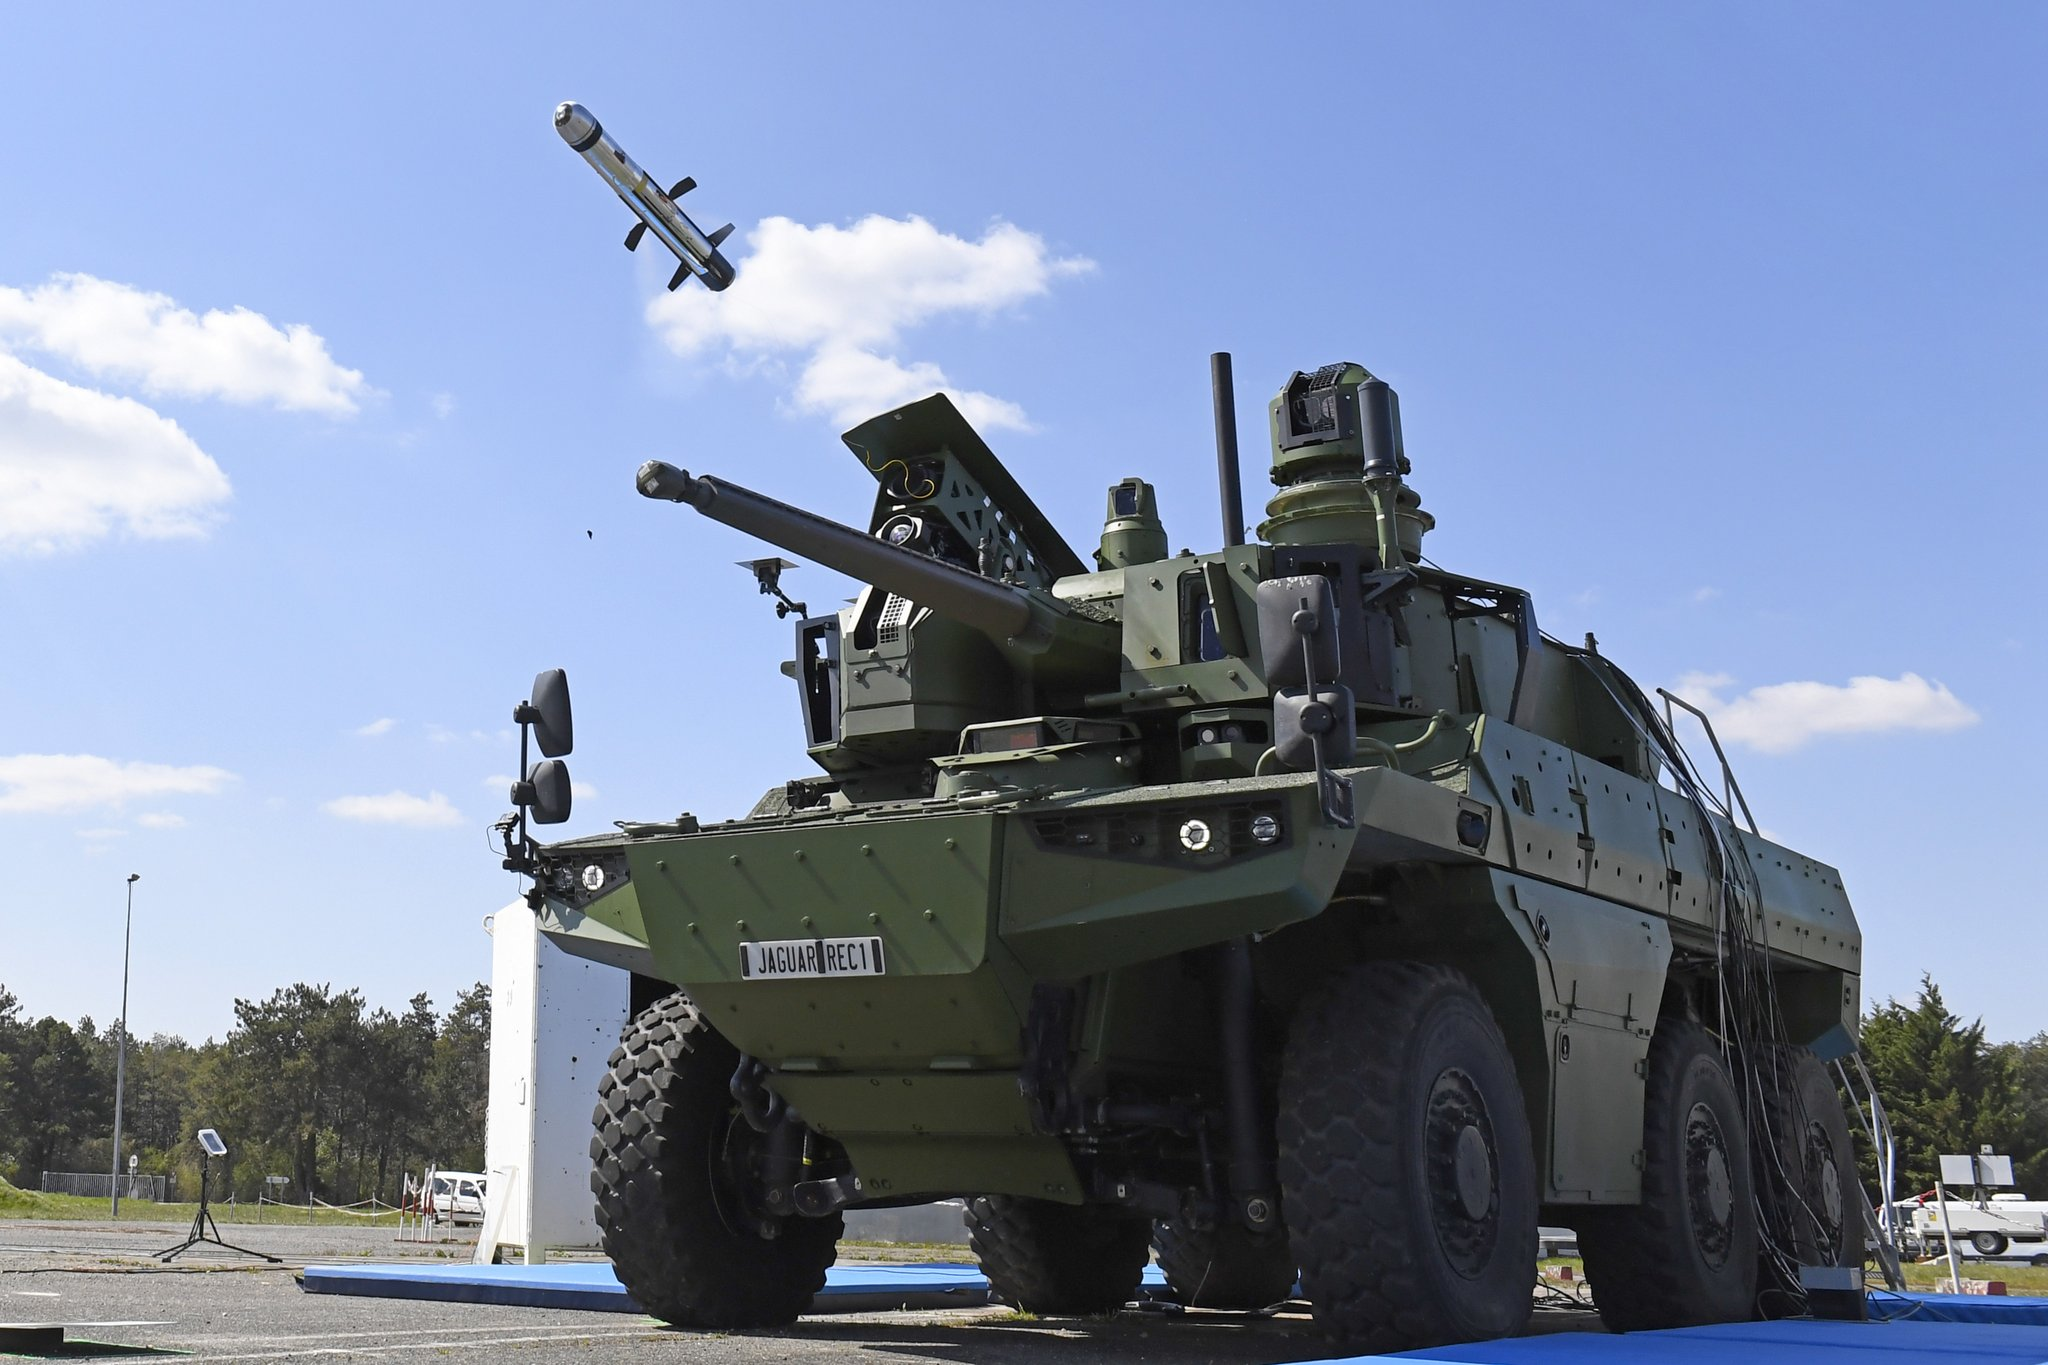 French Army Jaguar Reconnaissance Vehicle Fires MMP Anti-tank Guided Missile for First Time